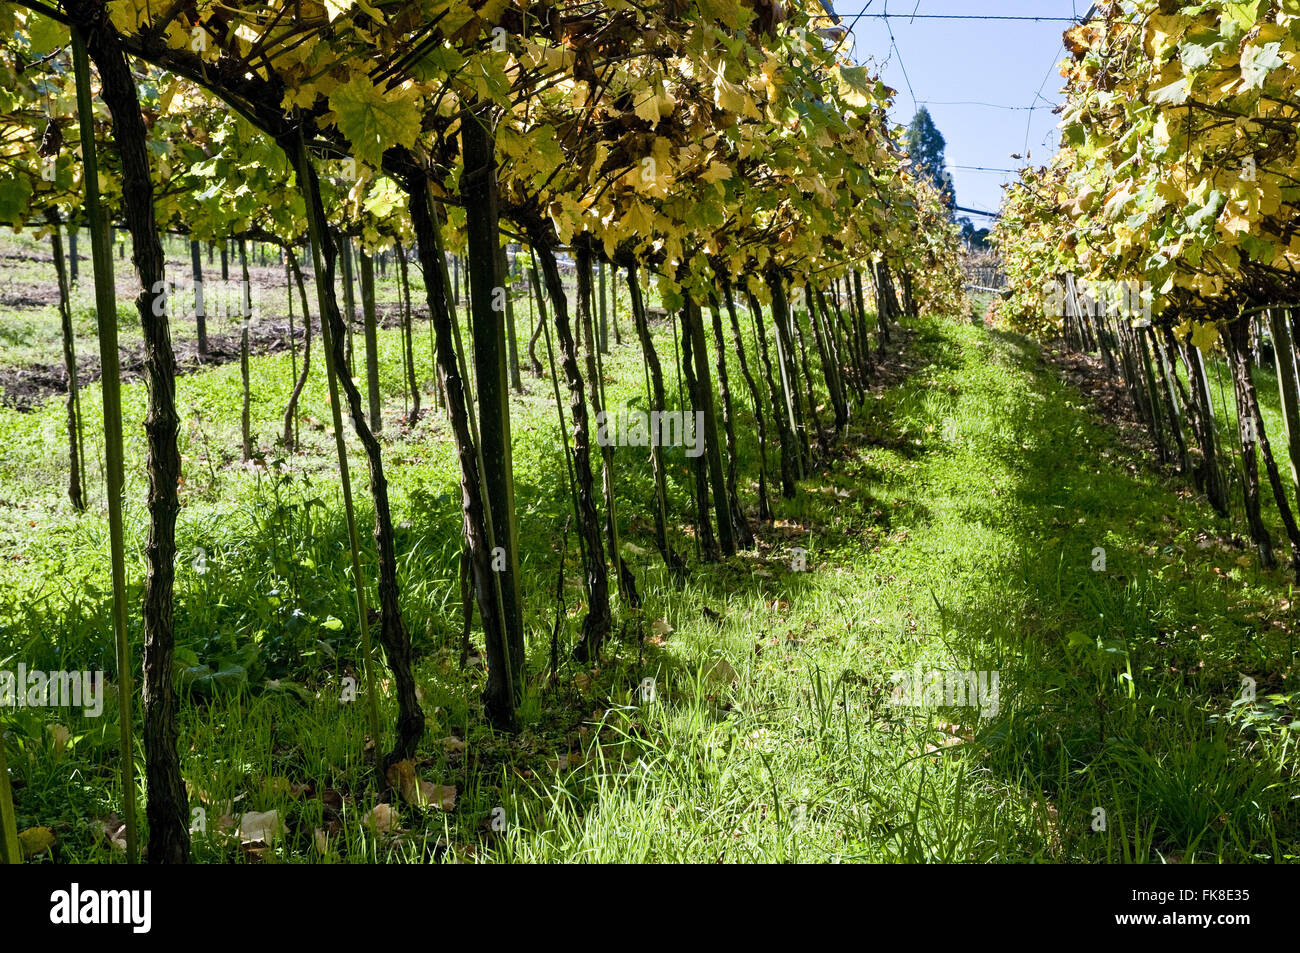 Vineyard in rural property in the tourist itinerary Road Taste - Stock Image